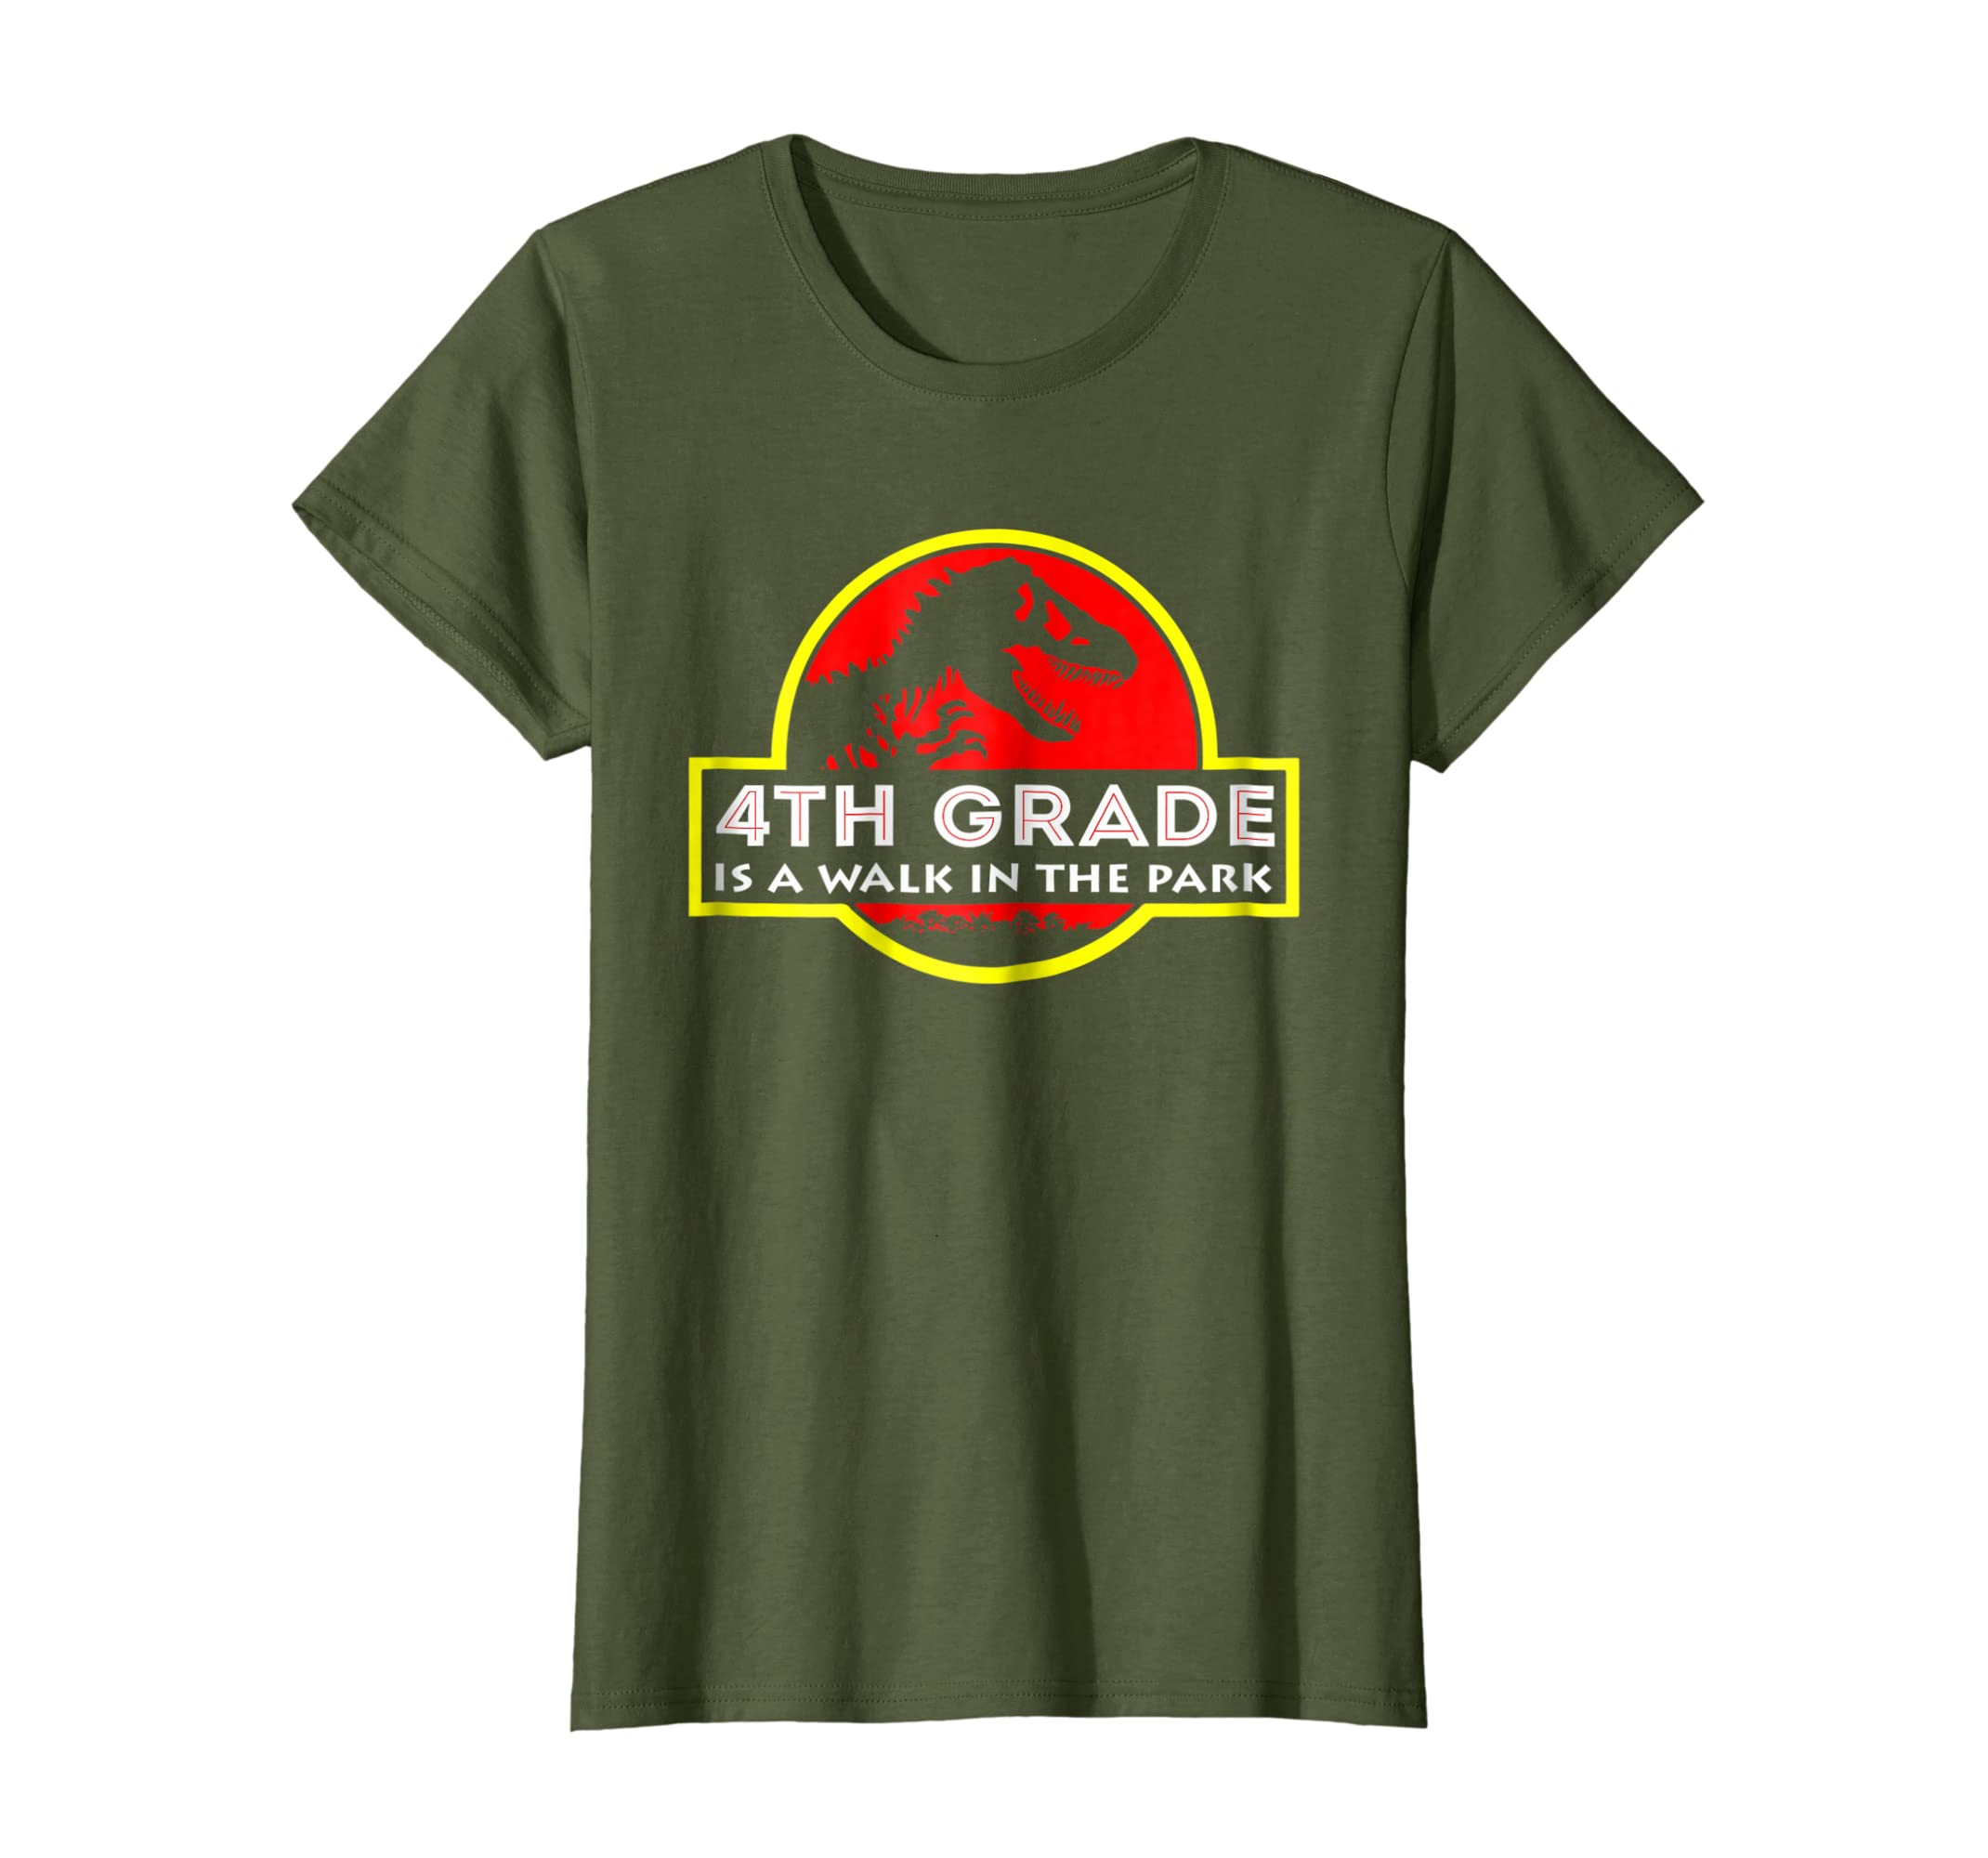 4th Grade is a walk in the park funny T shirt